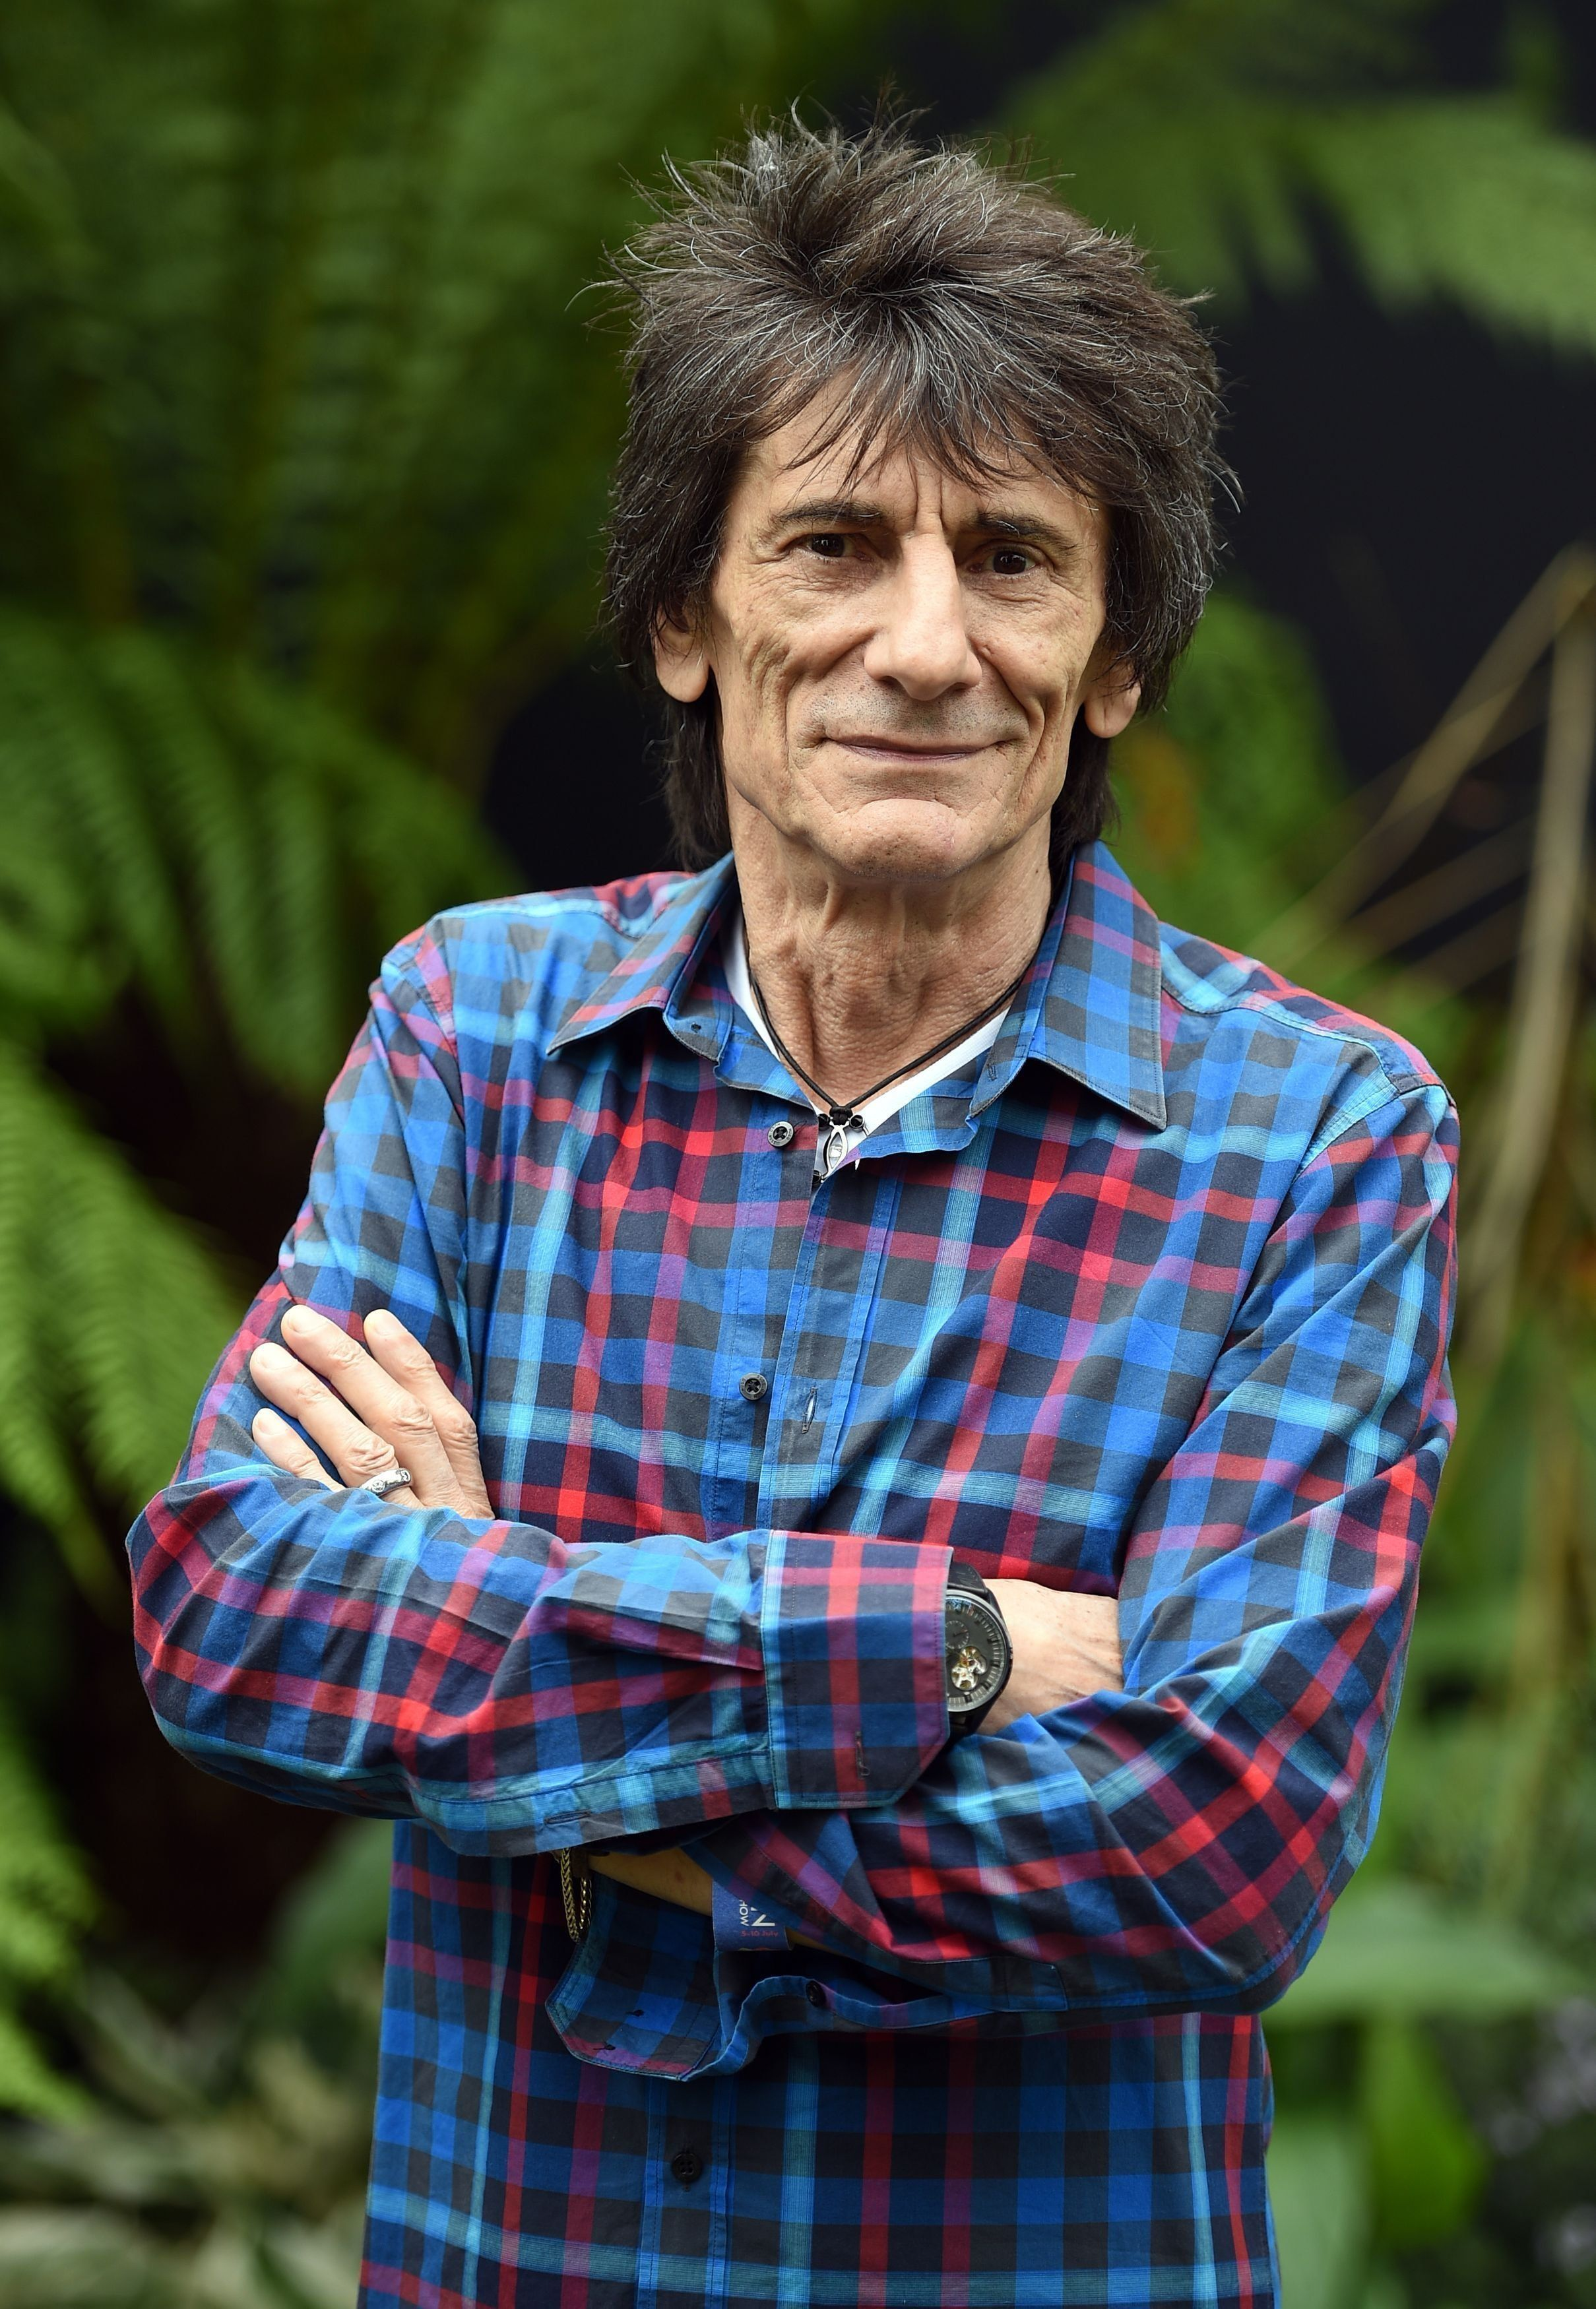 Ronnie Wood Reveals Lung Cancer